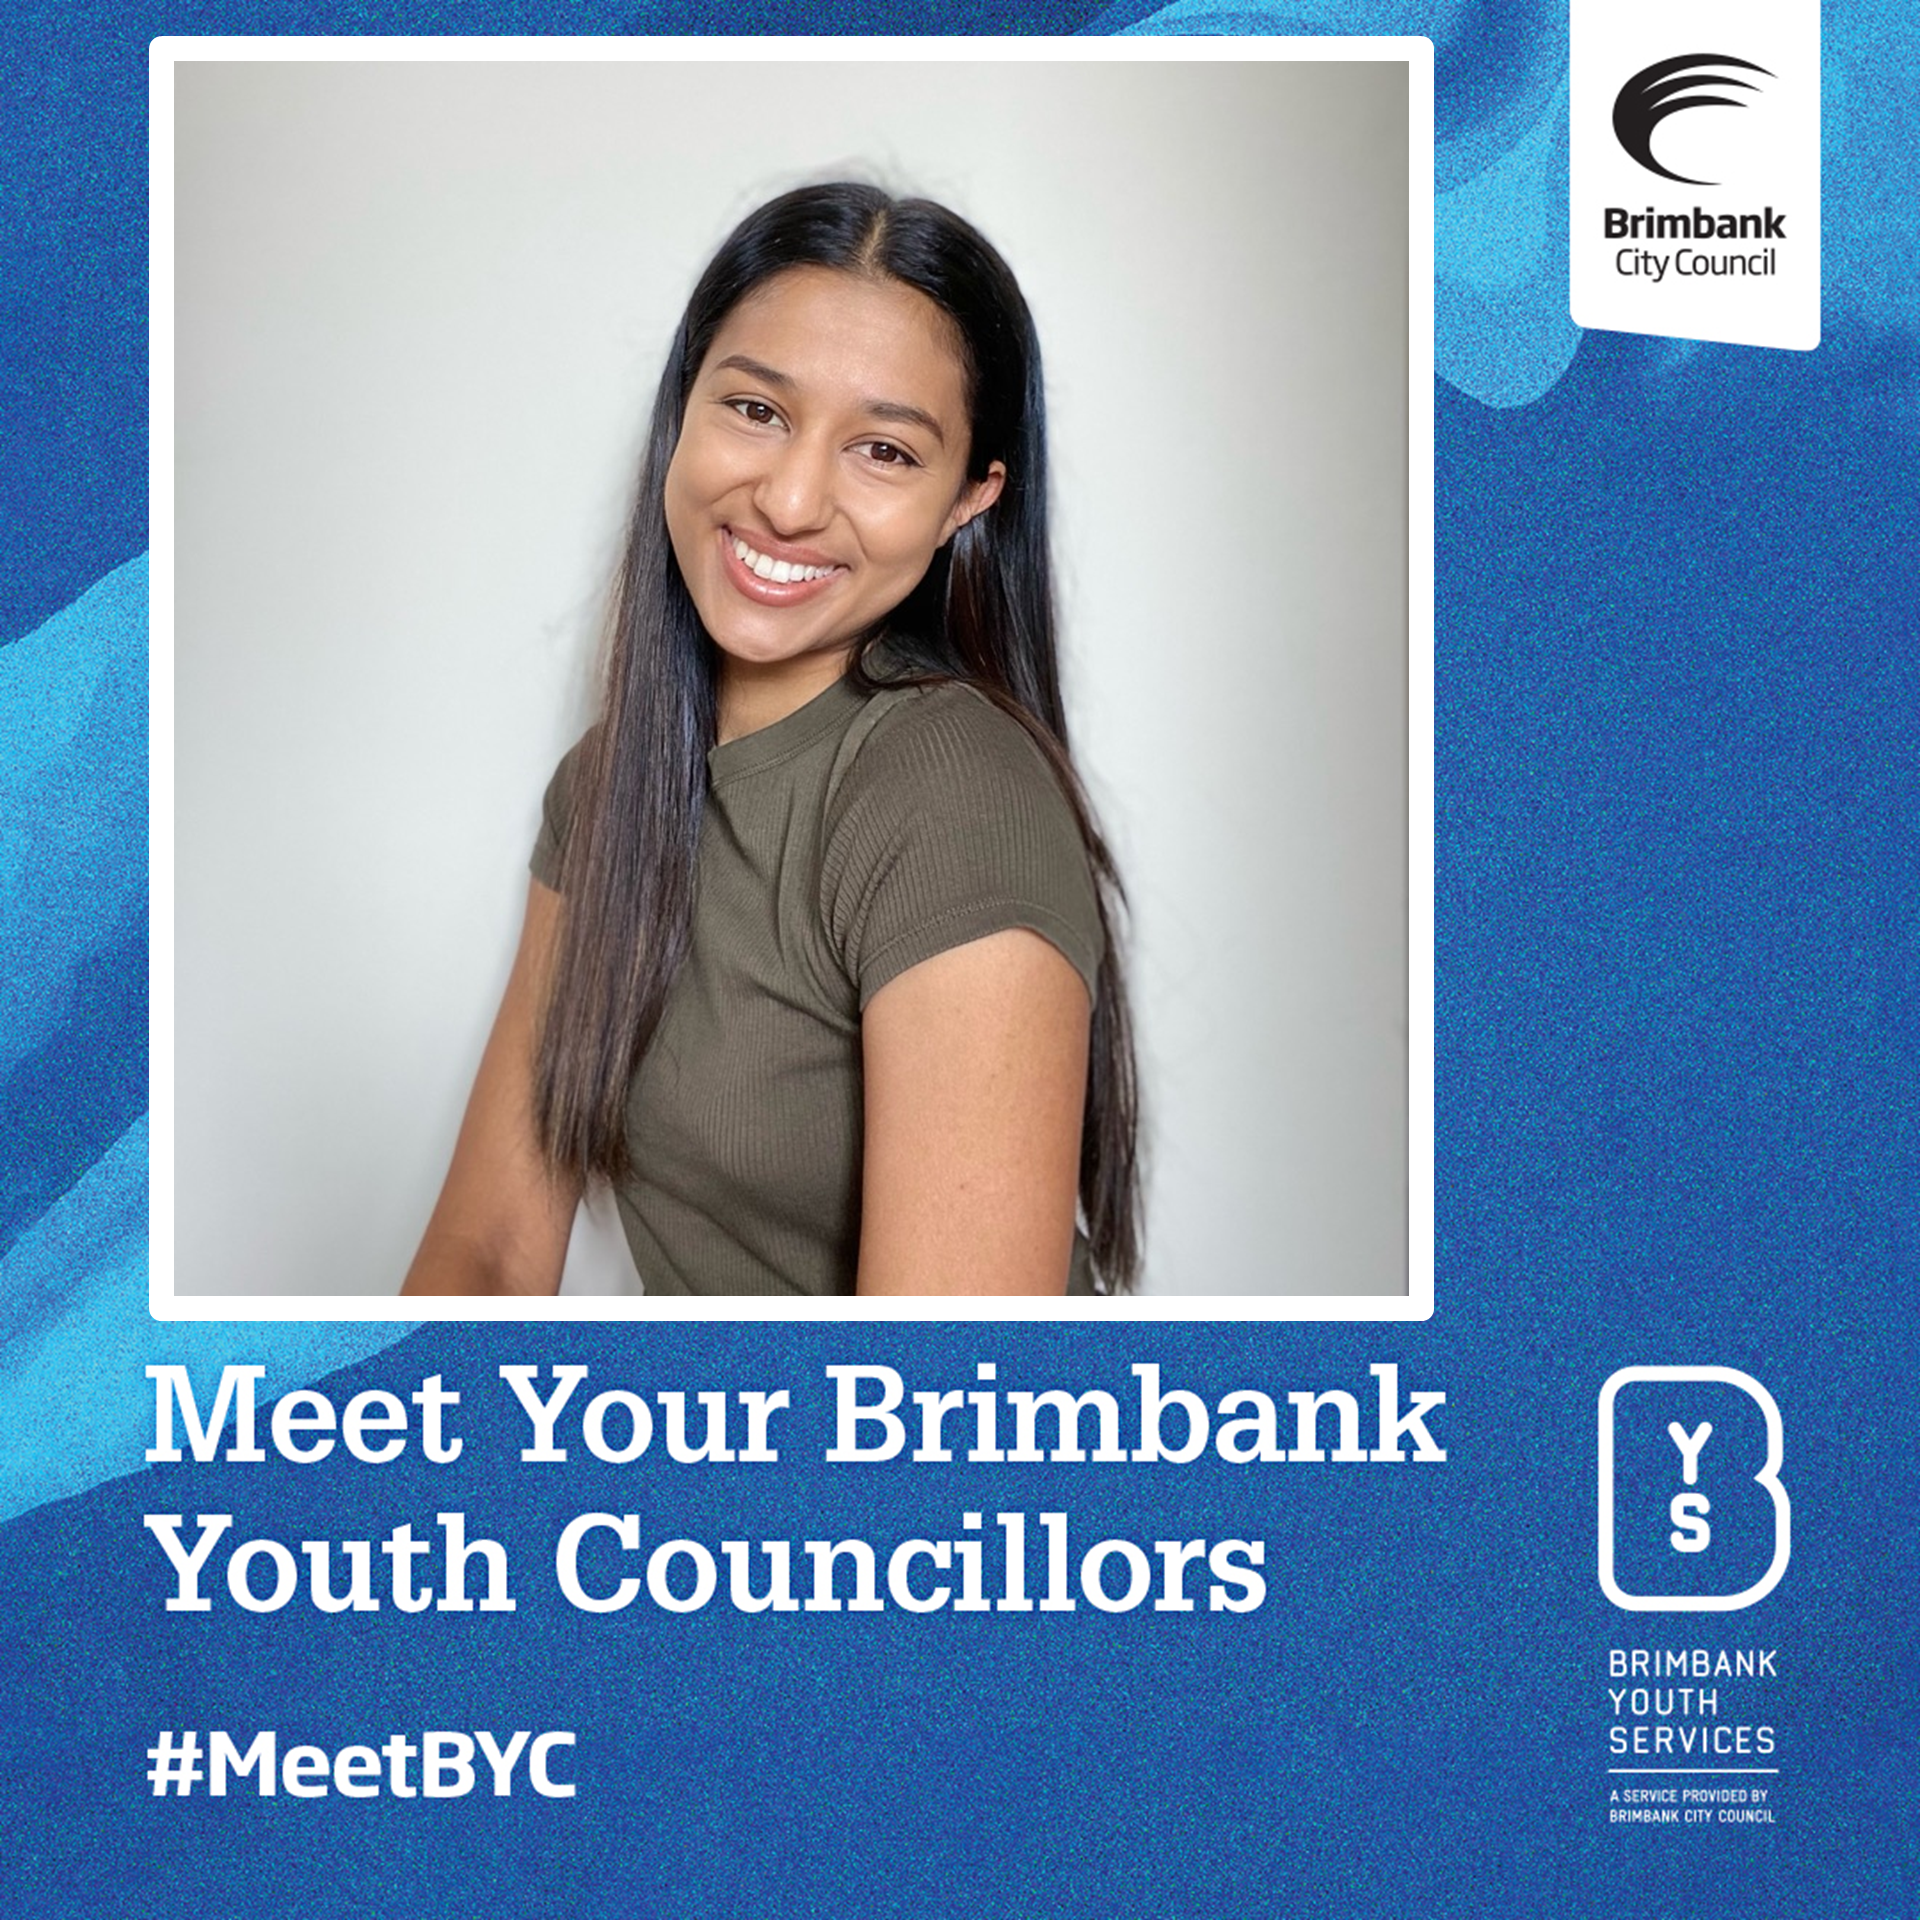 Candace Colaco Brimbank Youth Services